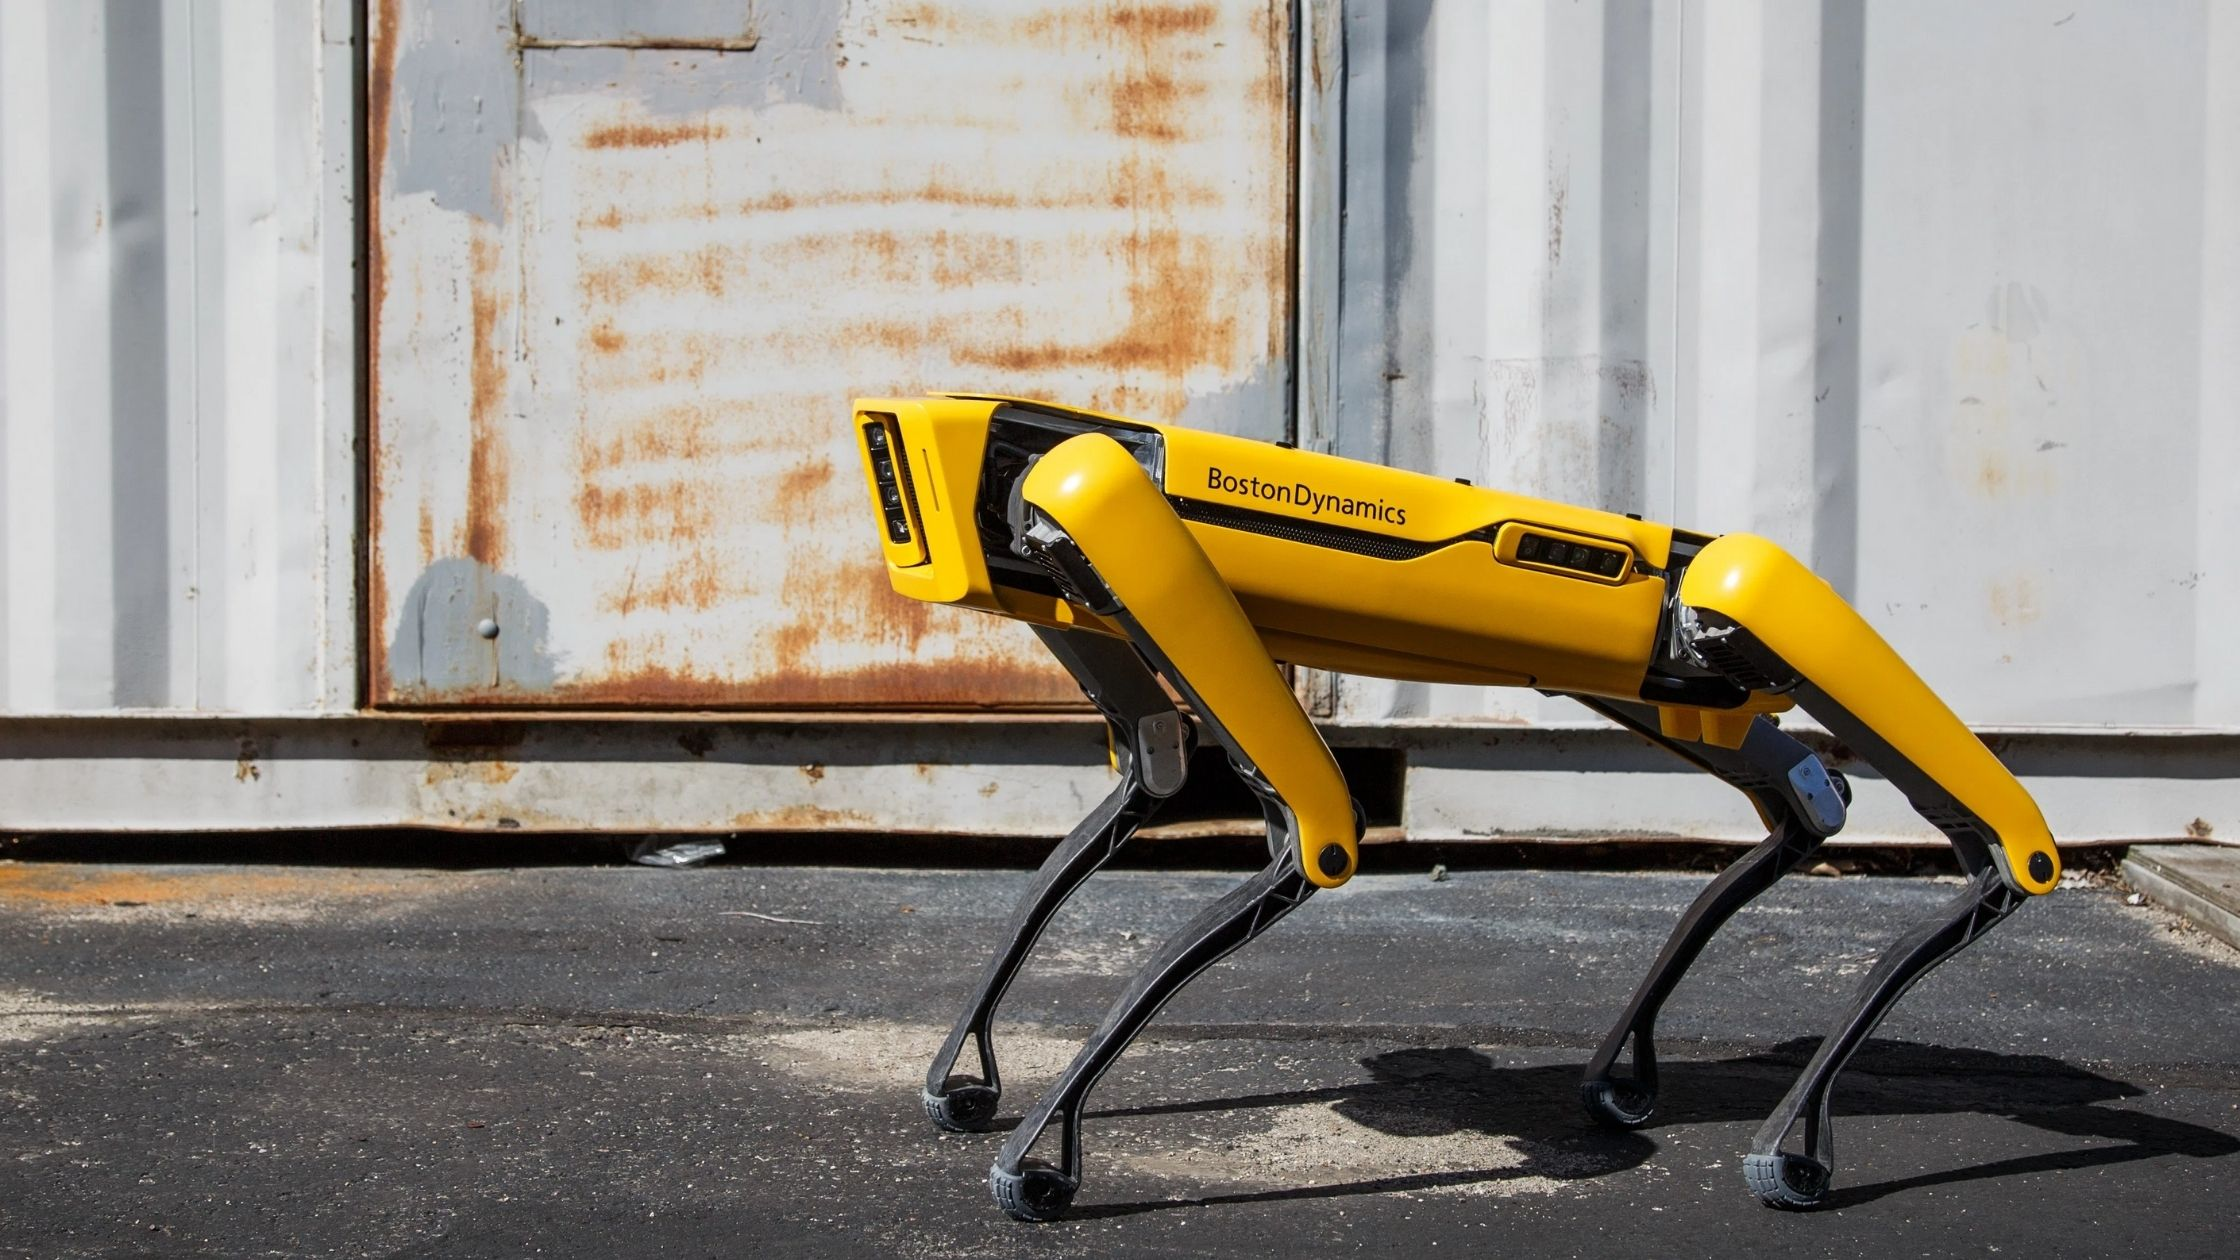 Boston Dynamics e SpaceX: il robot Spot monitora Starship